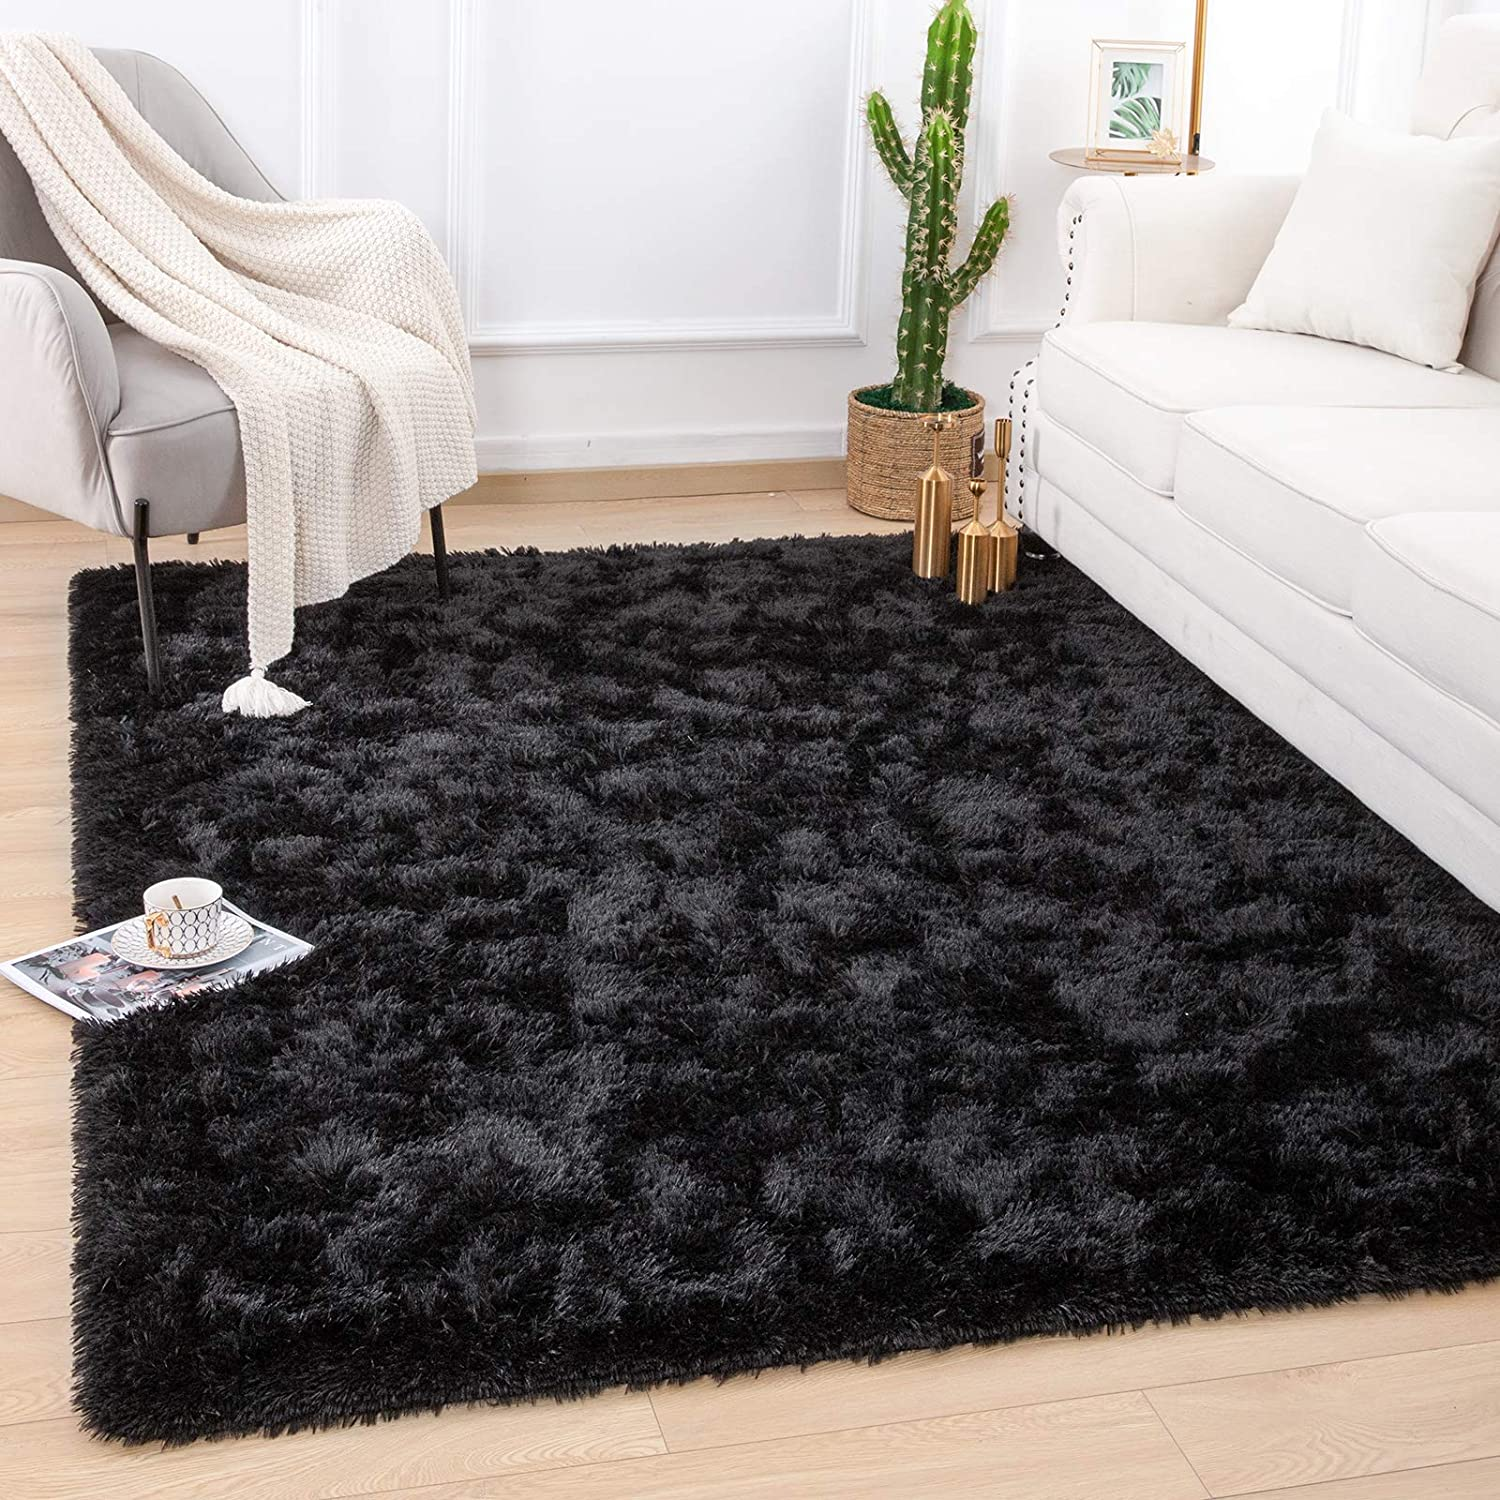 Quenlife Fluffy Bedroom Rug Plush and Soft Nursery Rugs Shaggy Carpet for Kids Grils Room Furry Children Home Decoration Shag Floor Rugs with Anti-Slip Bottom, 3 x 5ft, Black